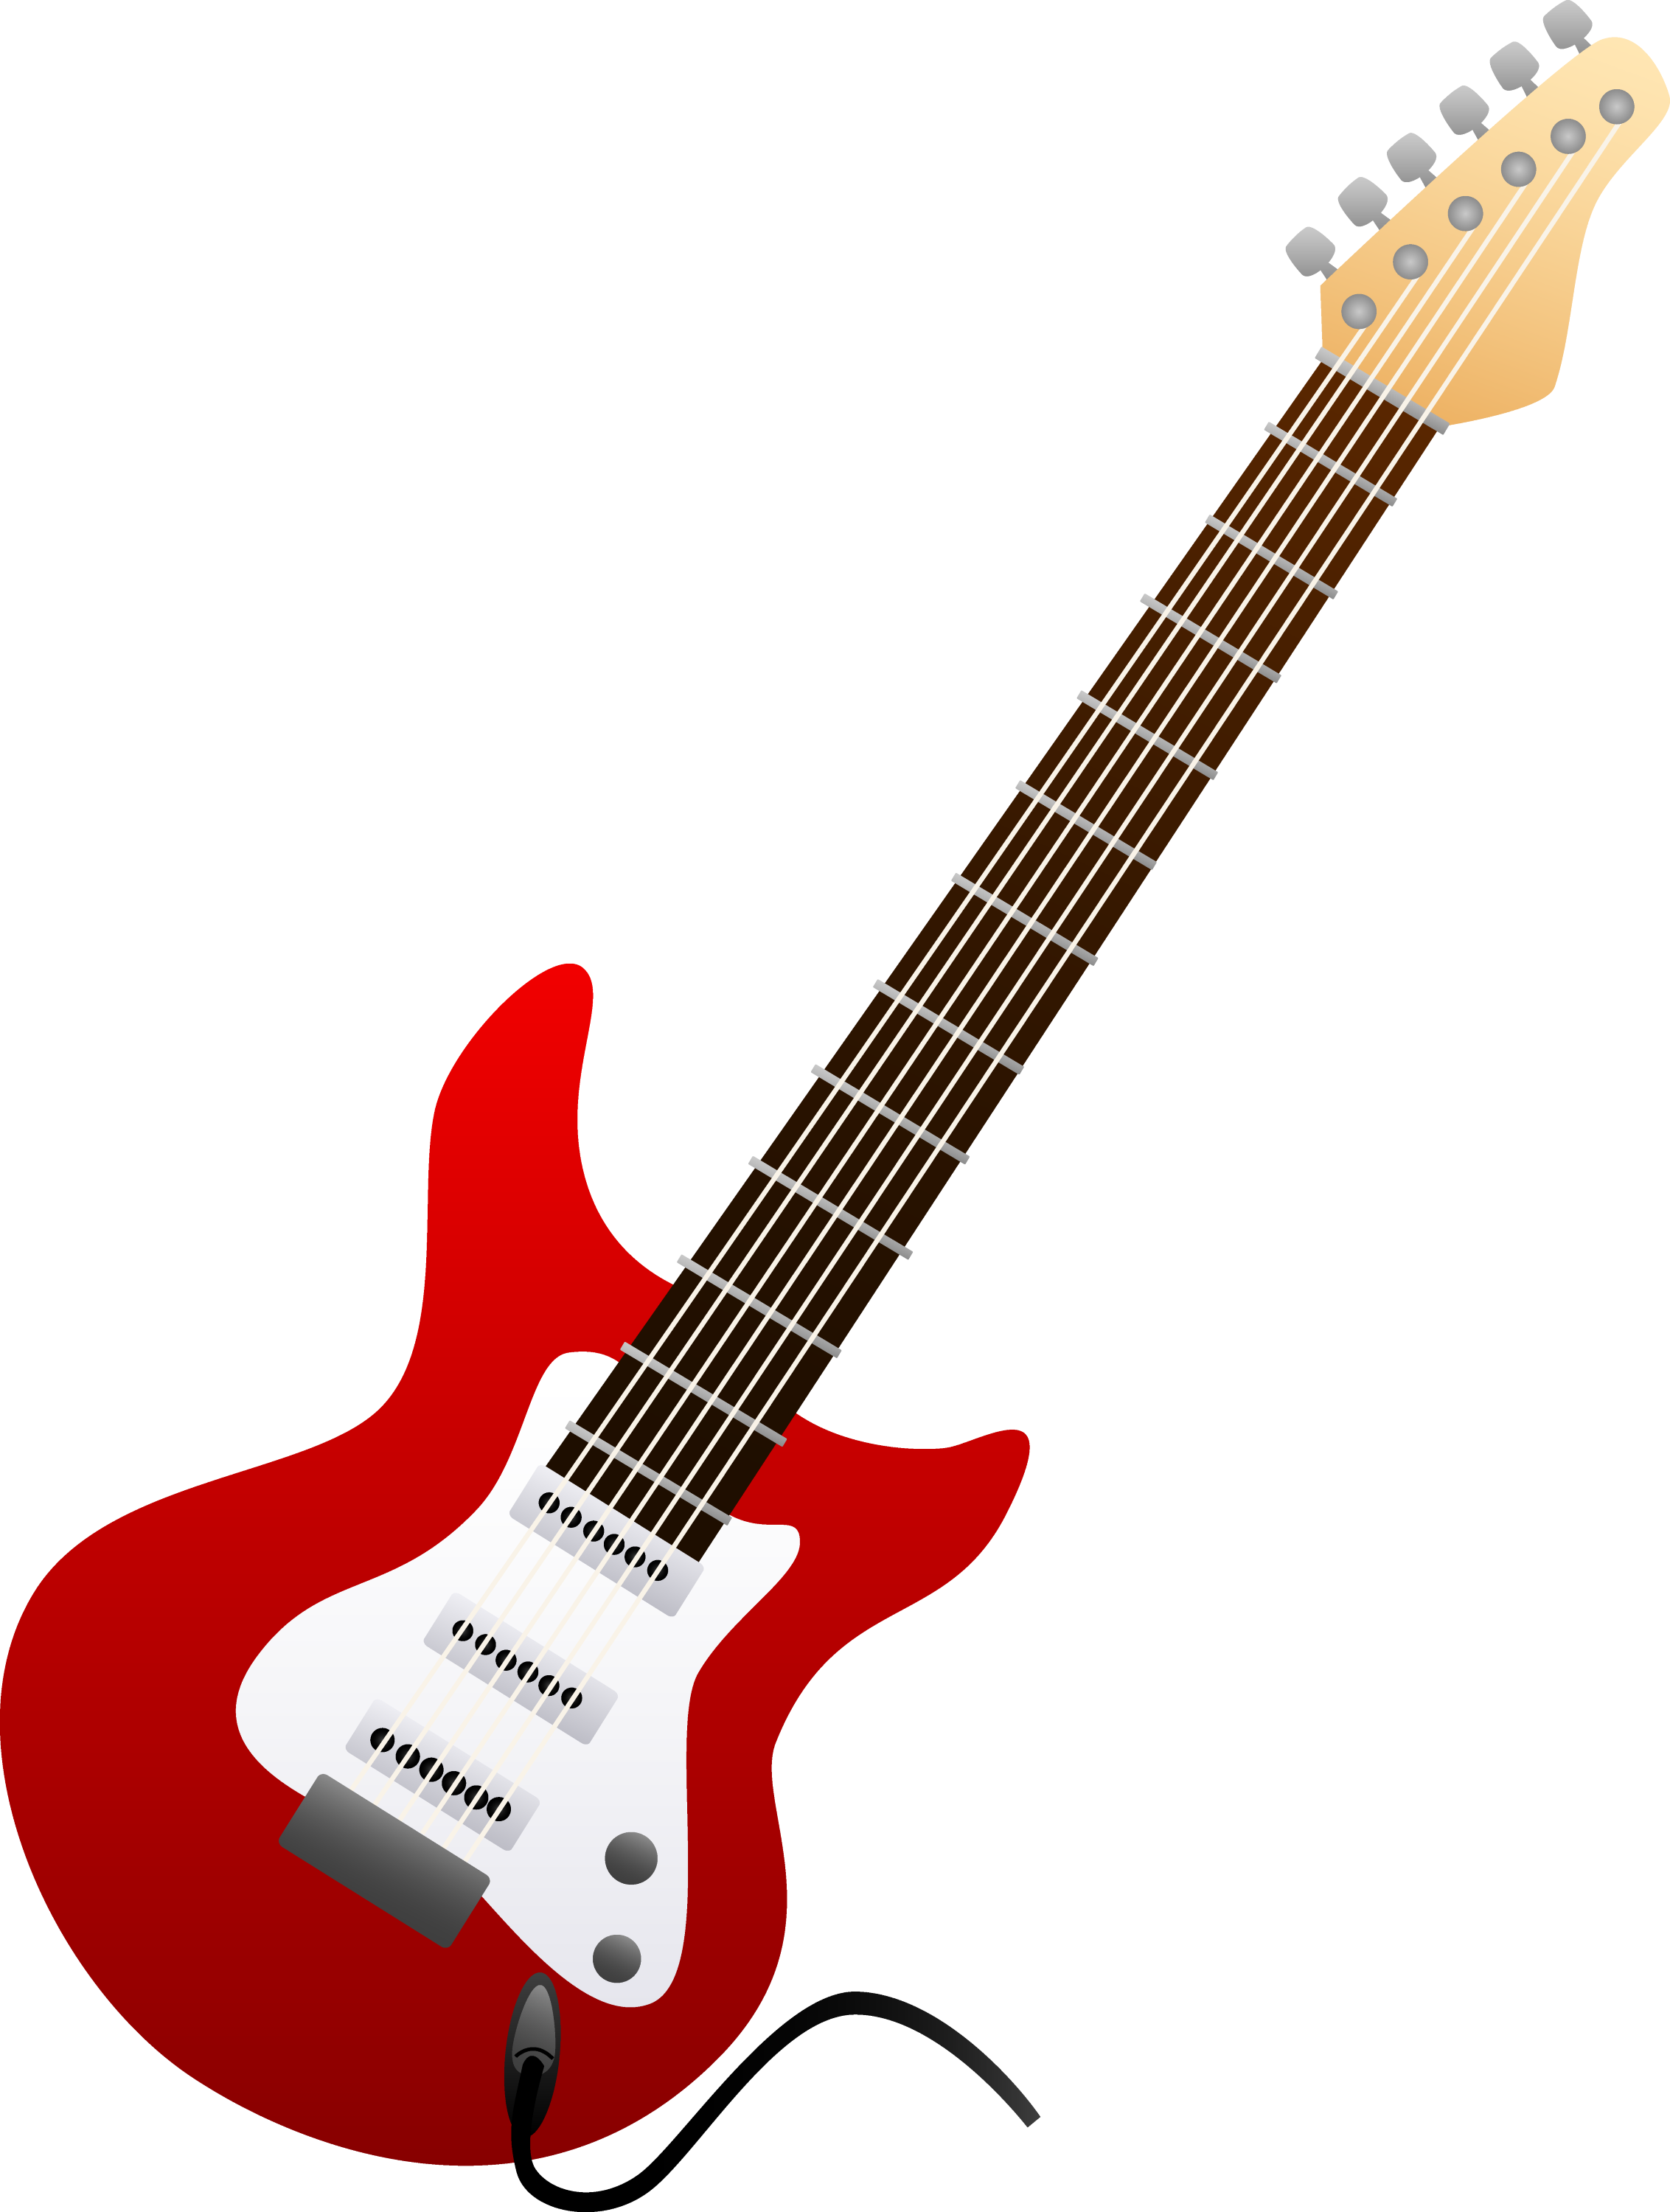 red electric guitar design free clip art rh sweetclipart com rock and roll clip art for elementary rock and roll clip art of 60, 70,